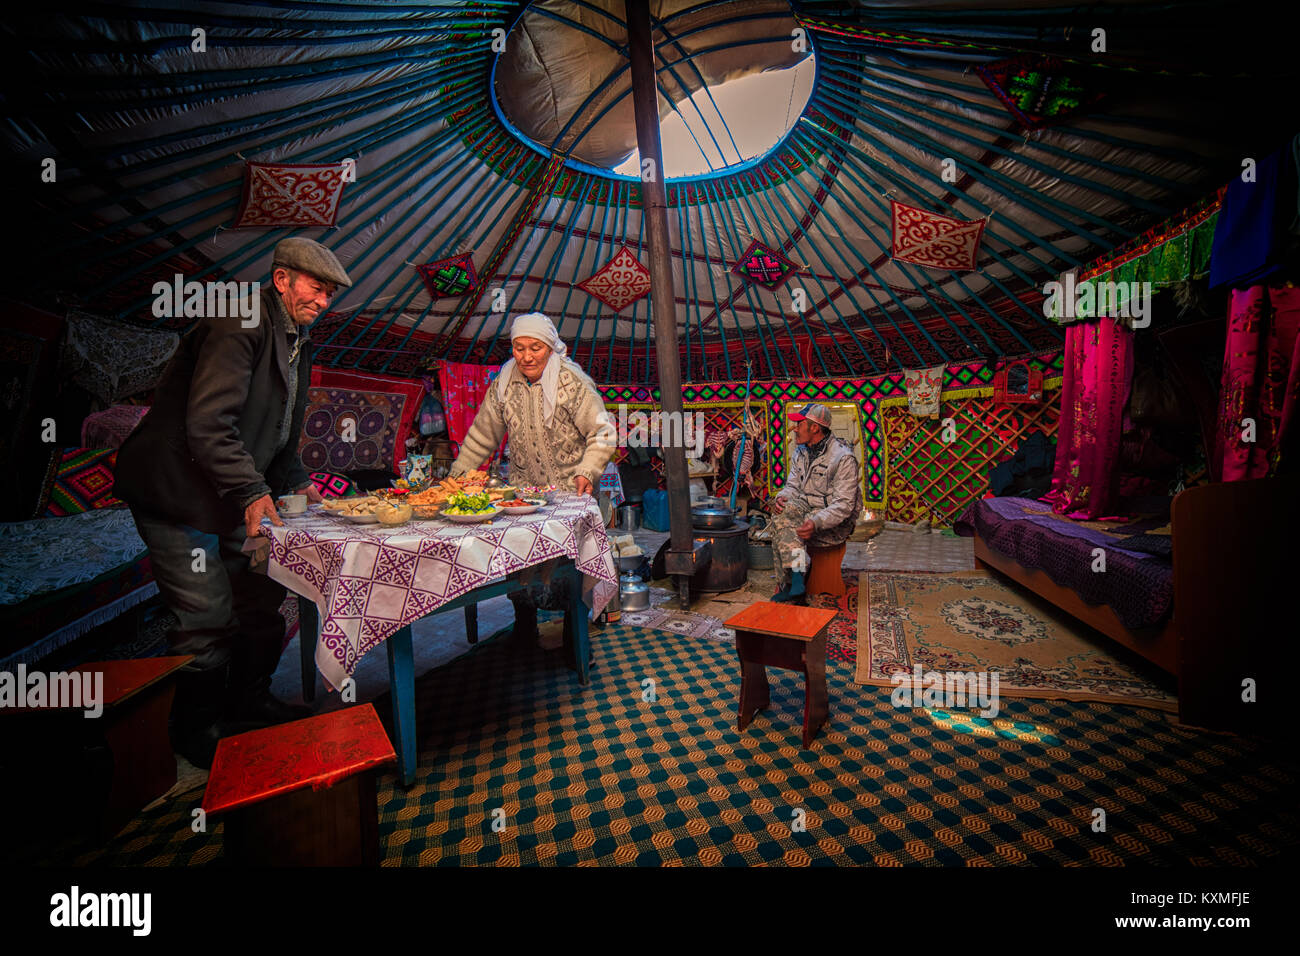 Vieux couple rural Kazakh mongol de la famille hunter eagle servant le dîner à l'intérieur table Photo Stock